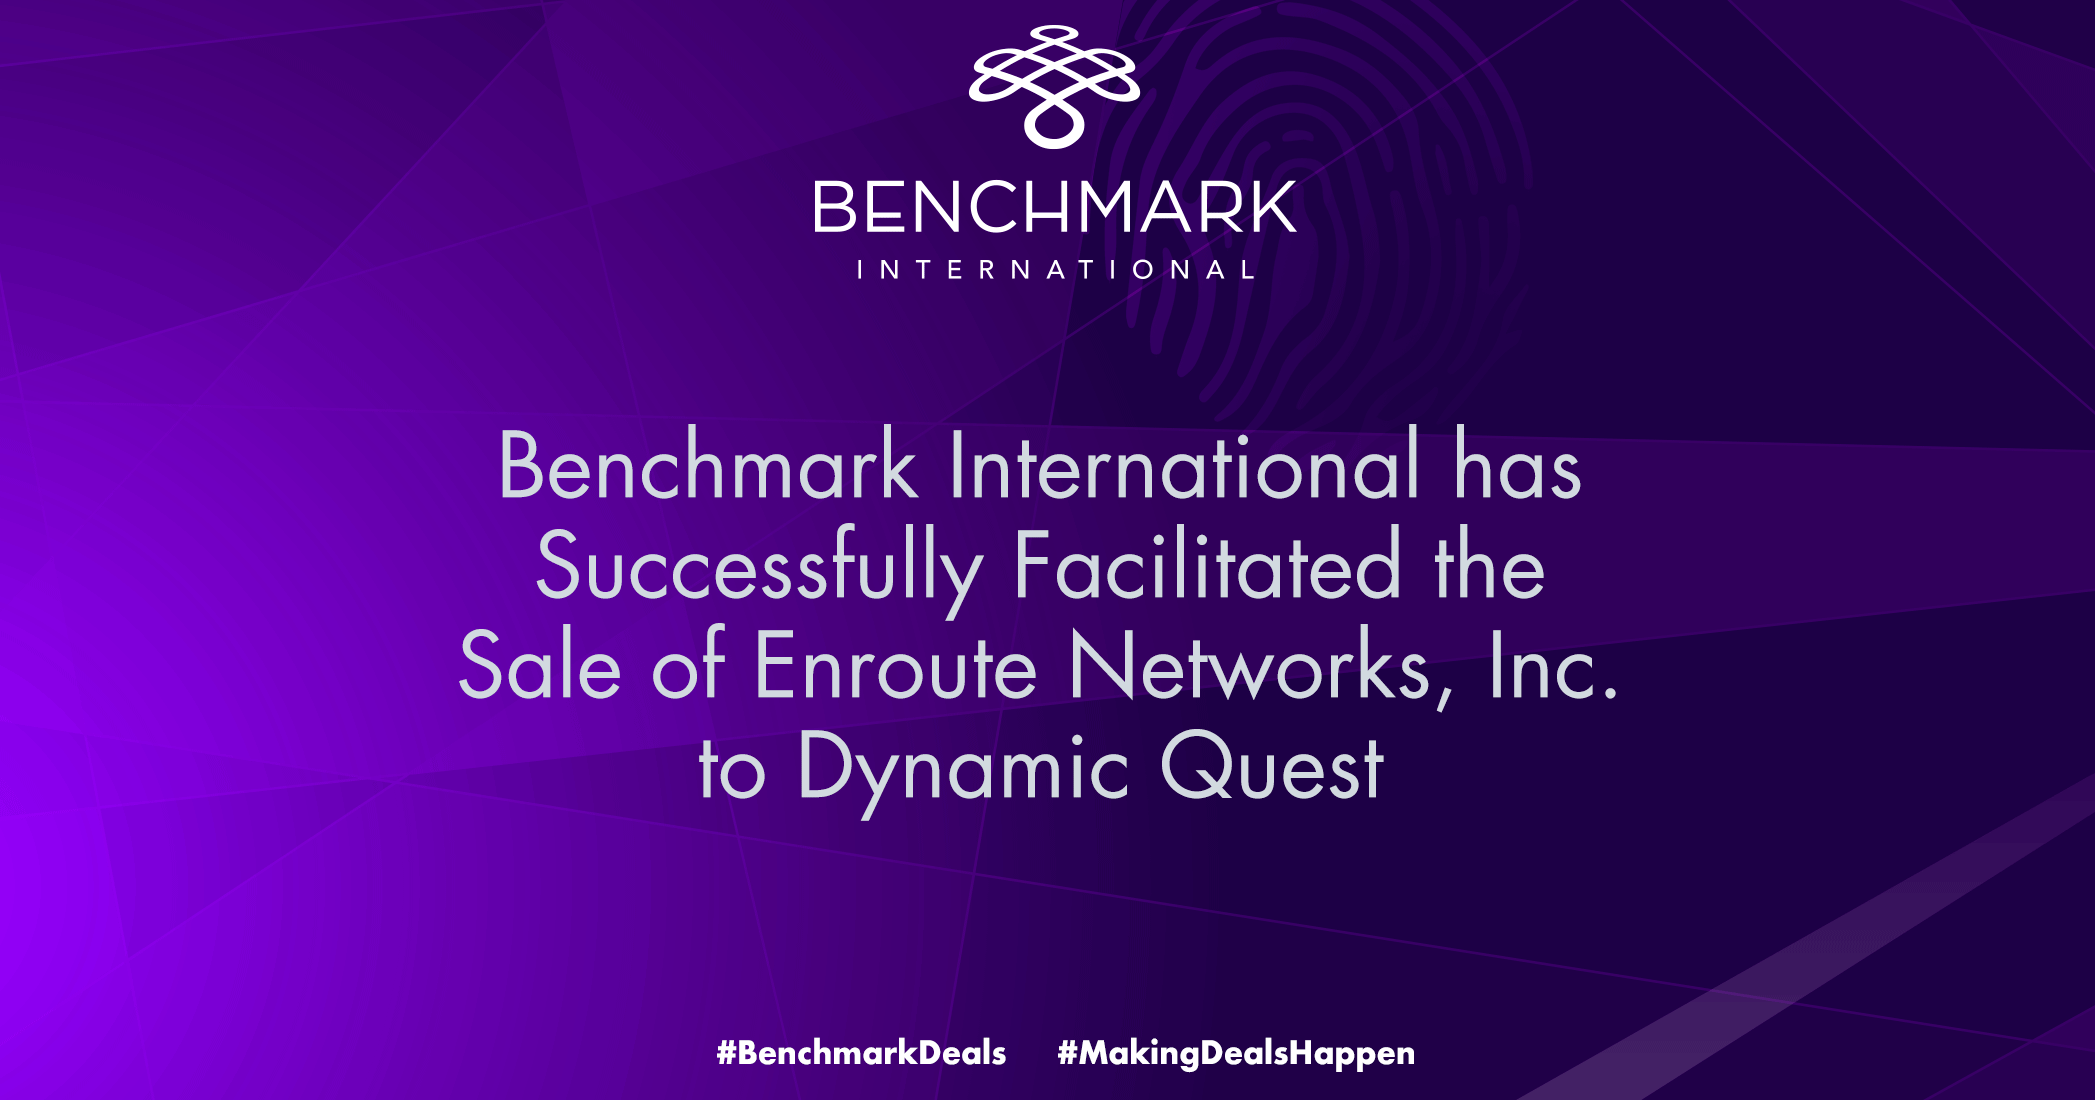 Benchmark International has Successfully Facilitated the Sale of Enroute Networks, Inc. to Dynamic Quest